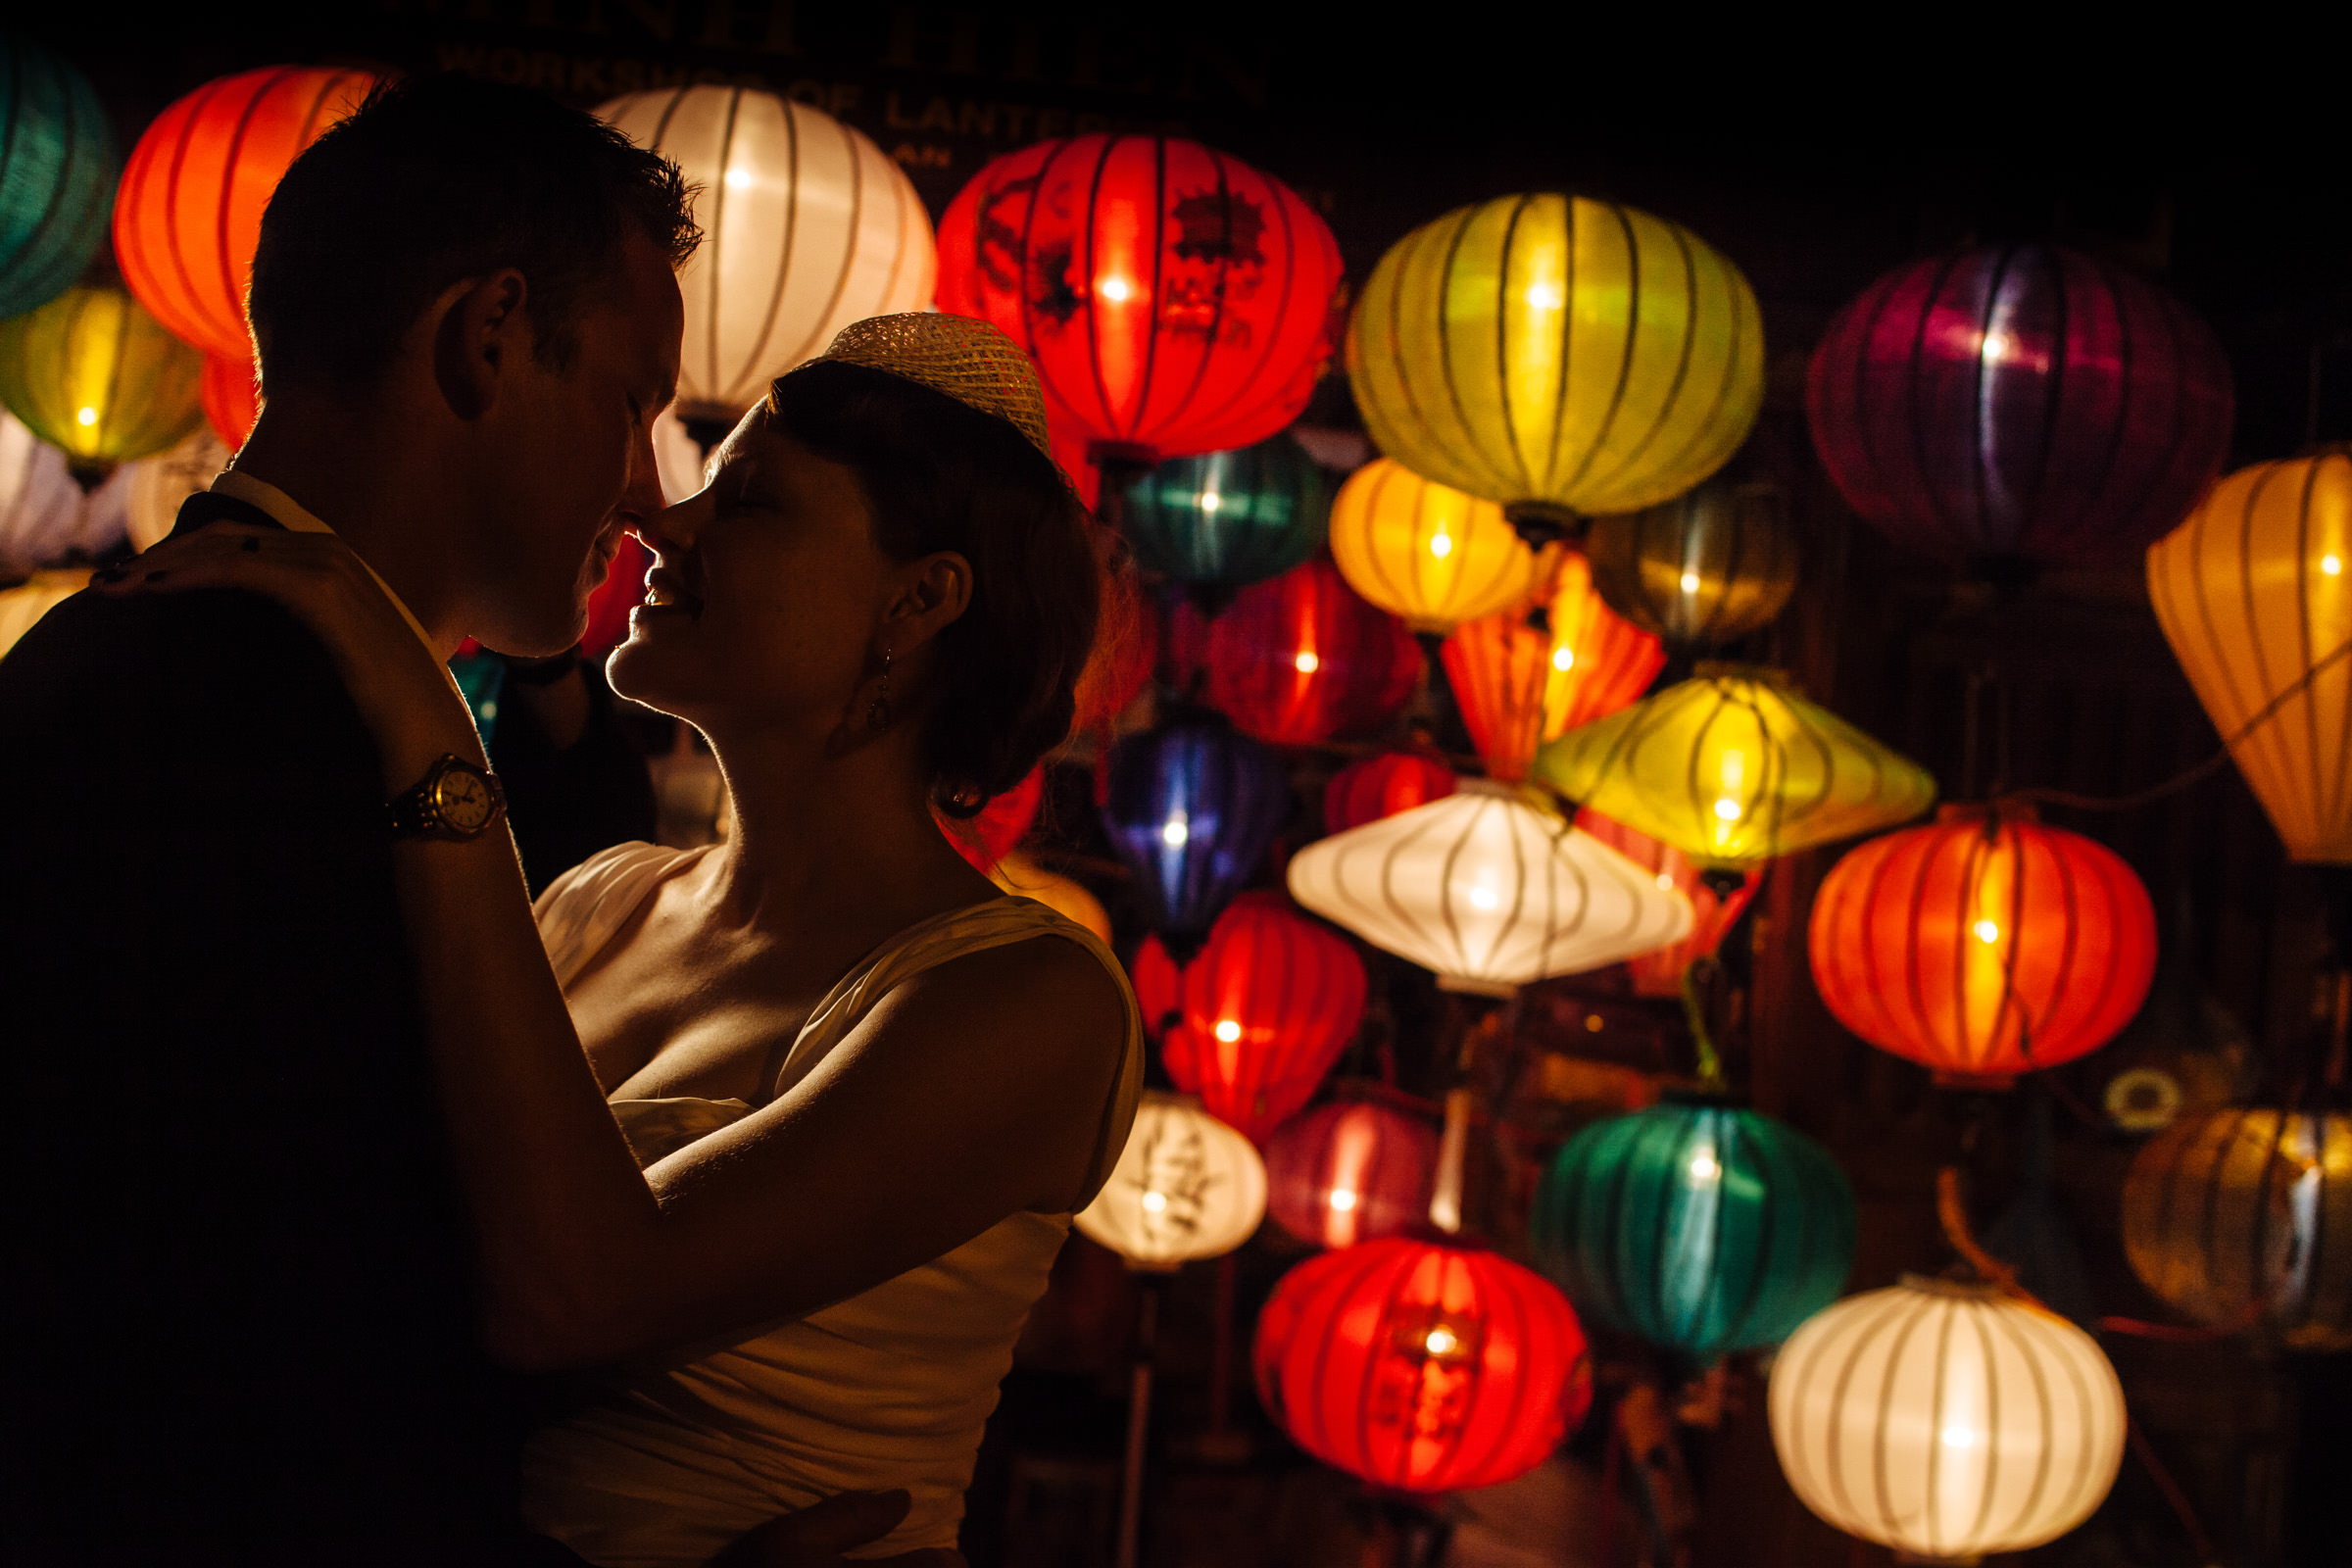 Couple against colorful lanterns - Photo by Wainwright Weddings